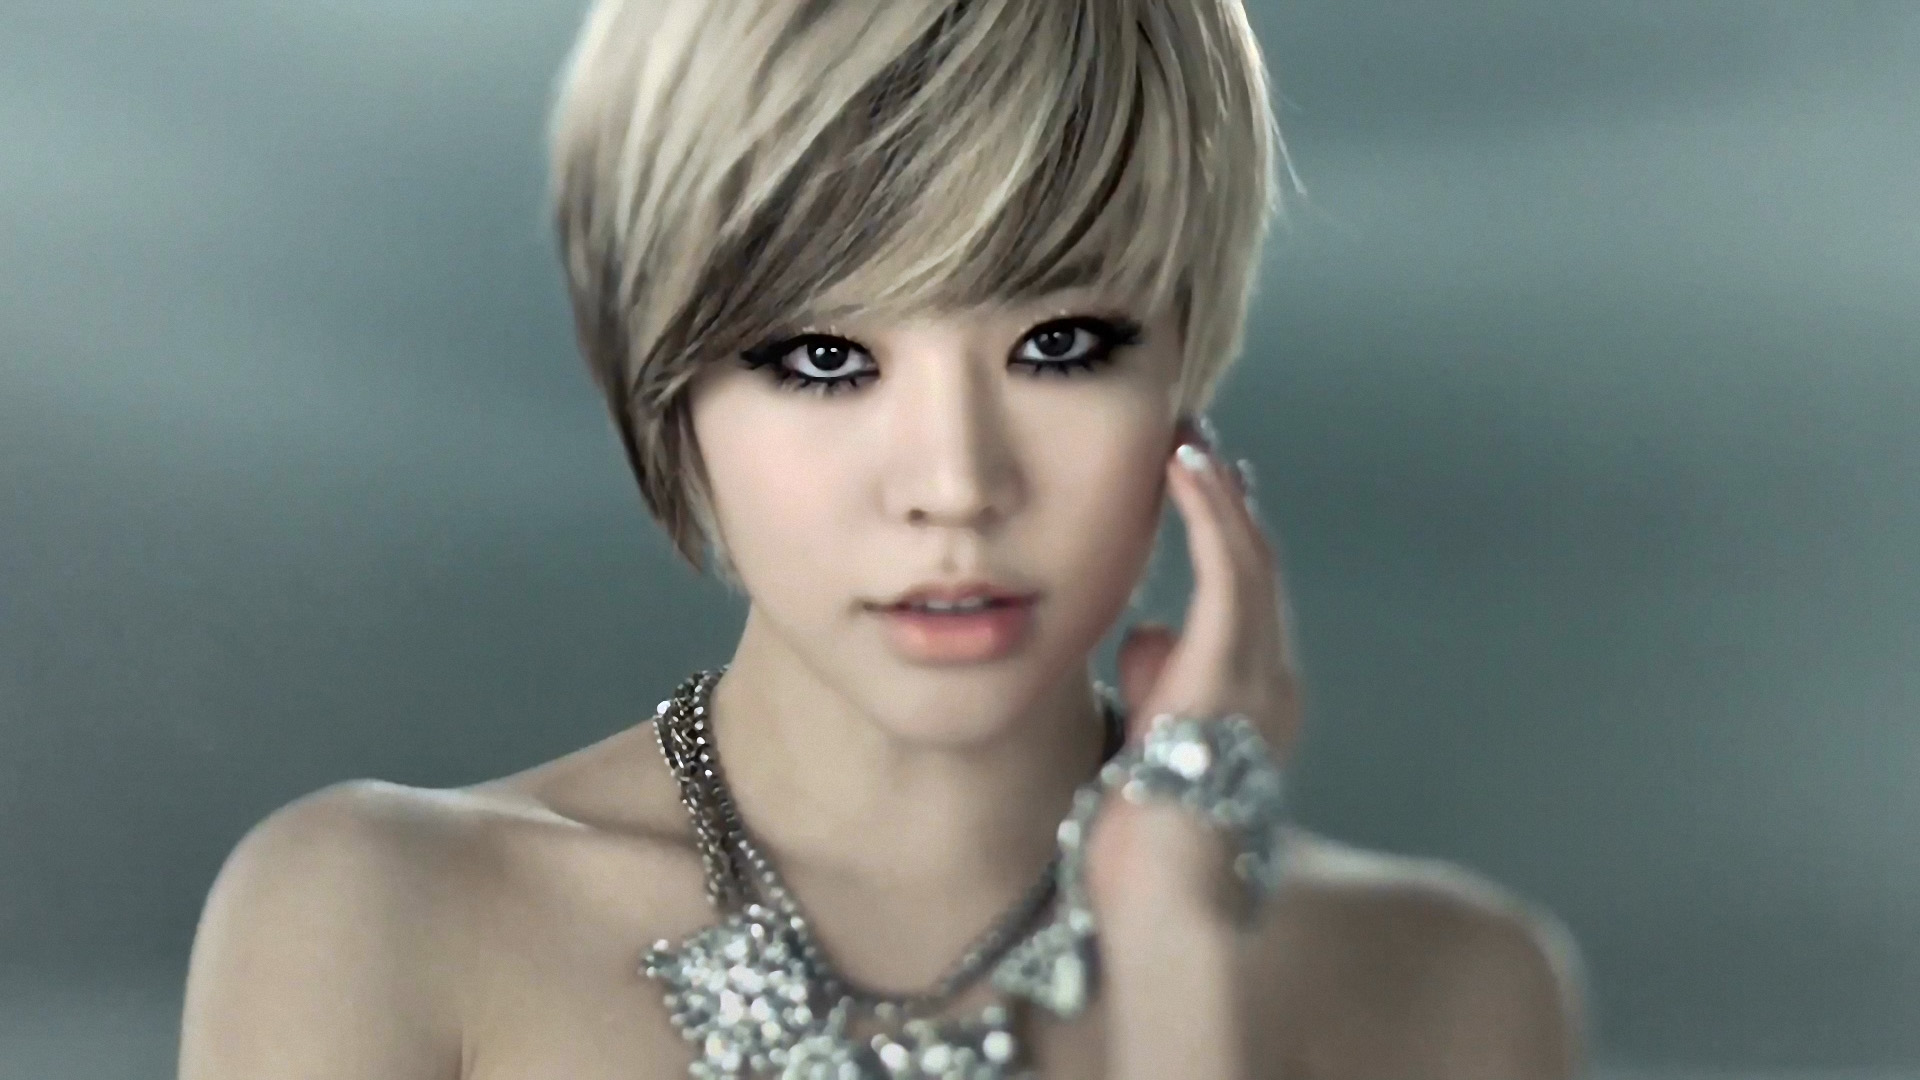 Female K Pop Idols That Look Attractive With Short Hairstyle